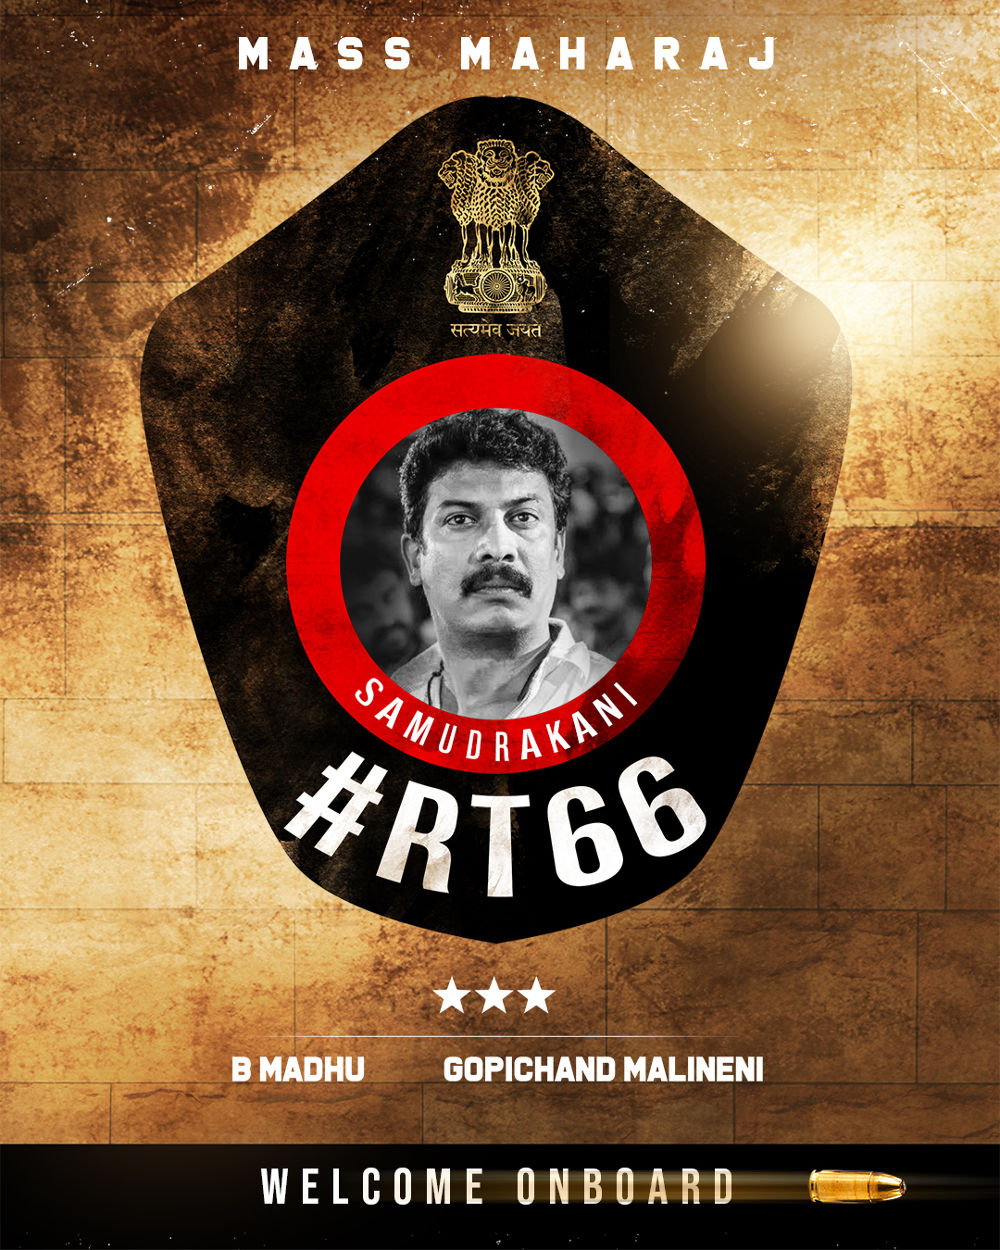 Tamil actor Samuthirakani in Ravi Teja, Gopichand Malineni RT66 movie